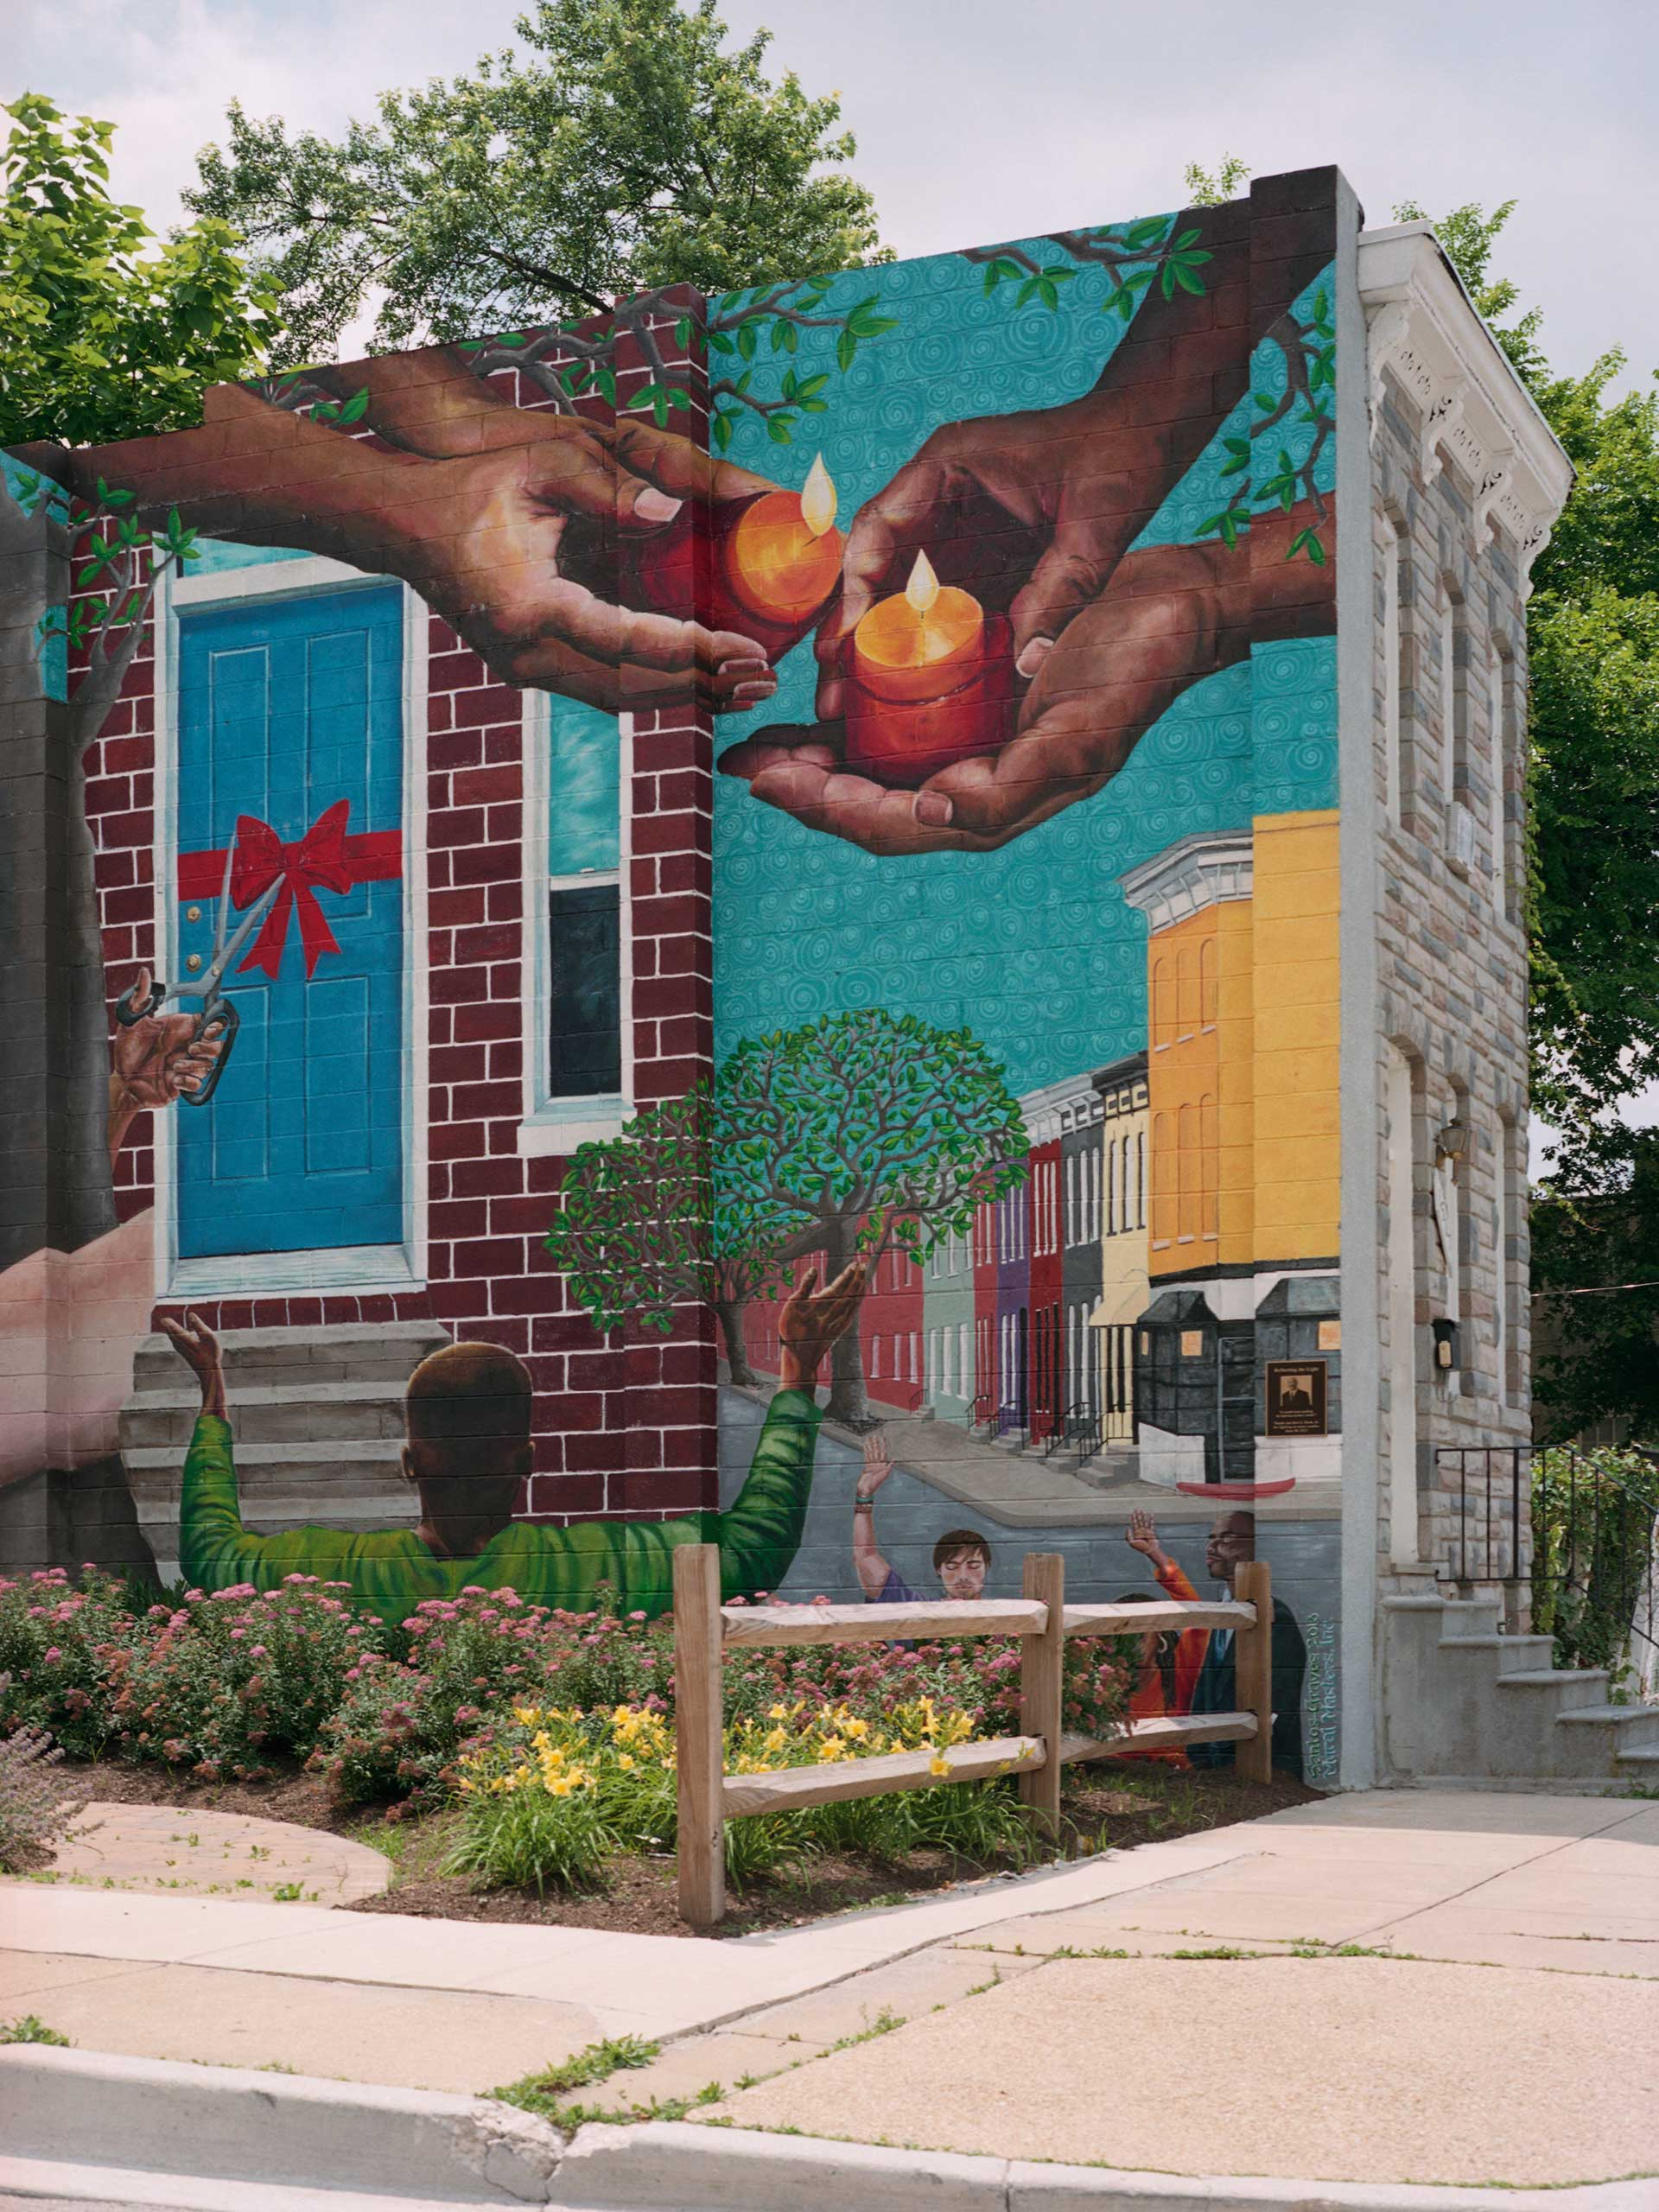 A mural adorns the exposed side of a row house near the corner of Baker Street and Leslie Street in Sandtown. The mural was painted in 2013 after the building on the corner burned down. It depicts both a community vigil and the construction of new homes by Habitat for Humanity. Over the span of 20 years Habitat for Humanity has renovated over 300 homes in the Sandtown neighborhood.